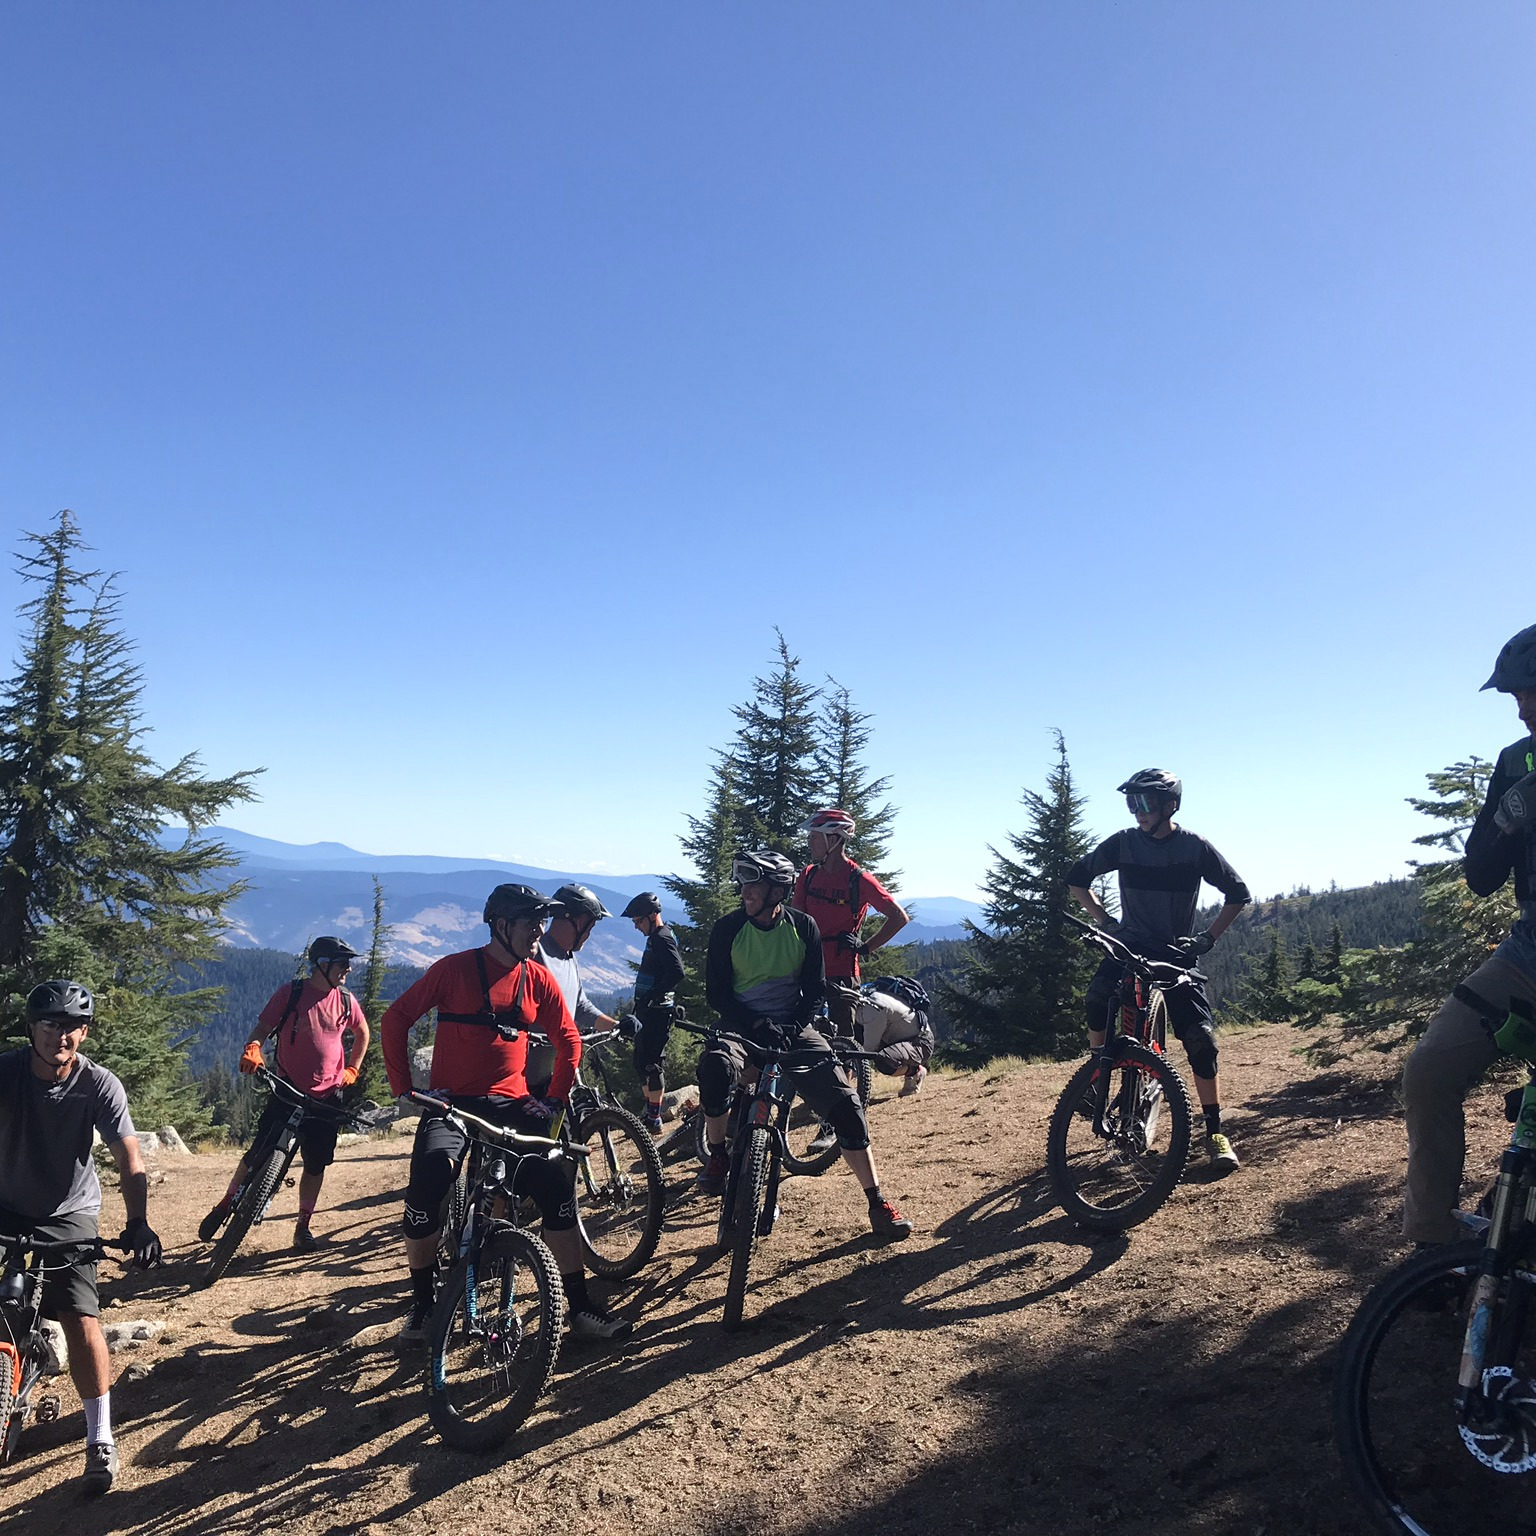 Photo of mountain bikers at a trailhead